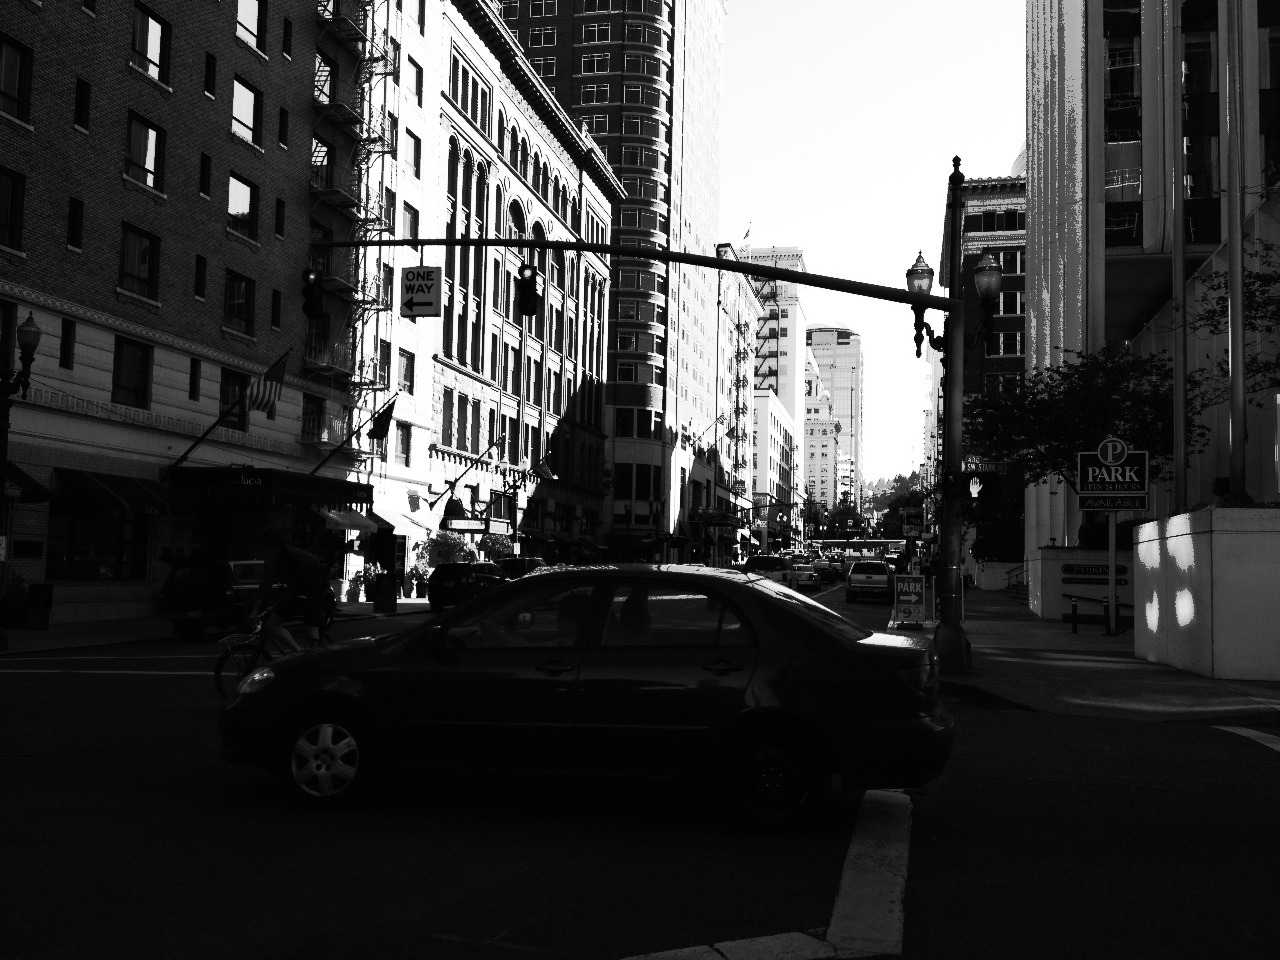 Messing around with other settings in a camera app I have. This was taken on Broadway in downtown Portland.